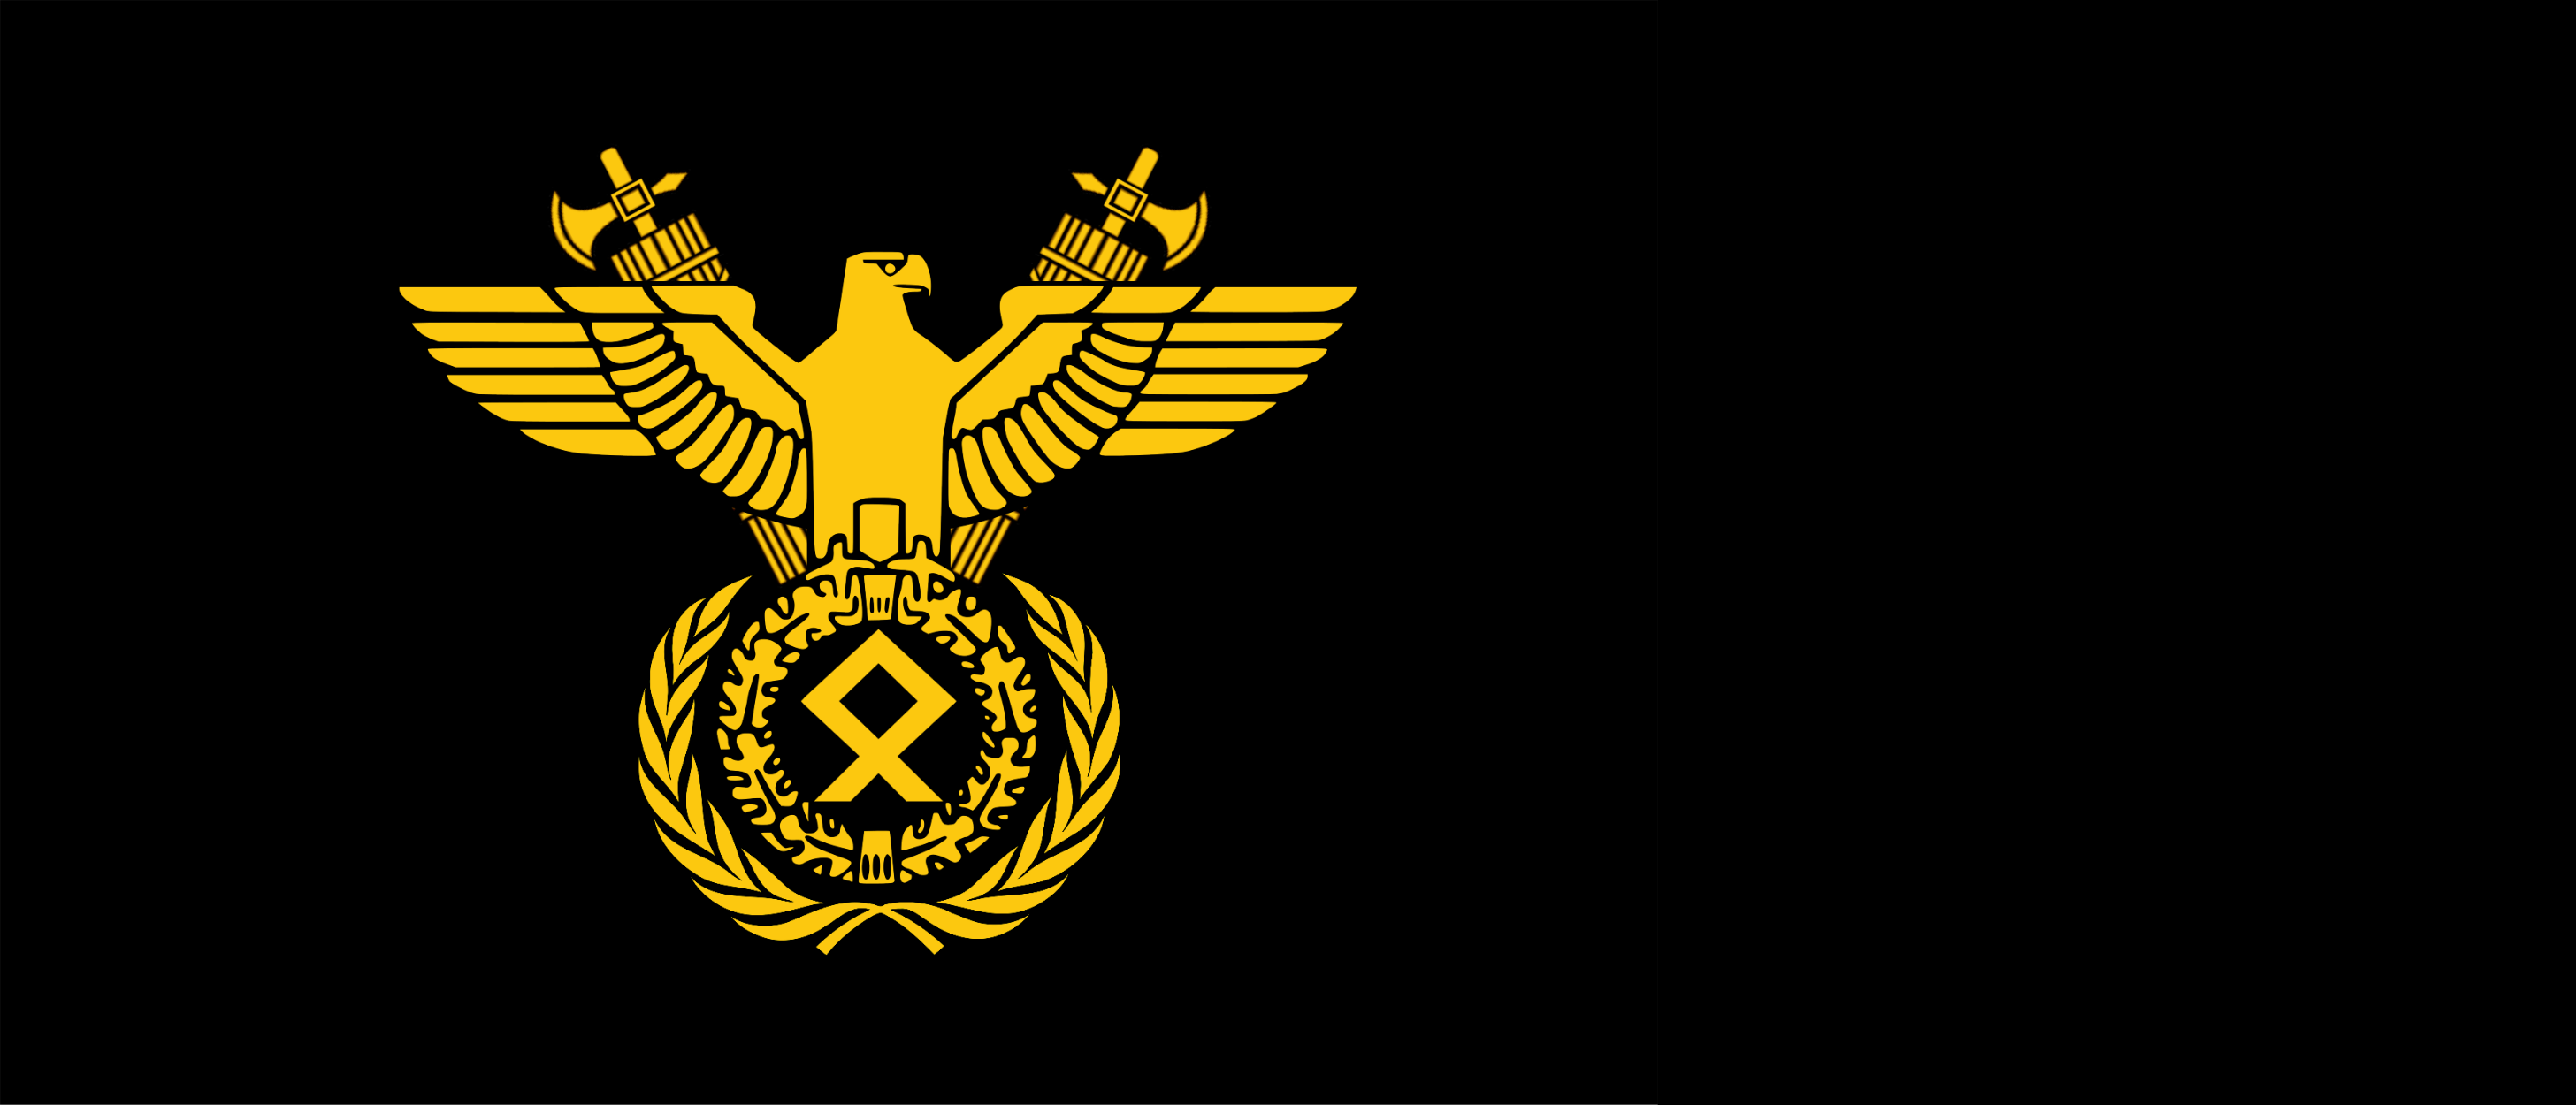 Weekly flag challenge discussion entries page 157 alternate the growing conquest of the world by the third reich was in eyes of many inevitable their advent of nuclear and biological weapons made them unstoppable biocorpaavc